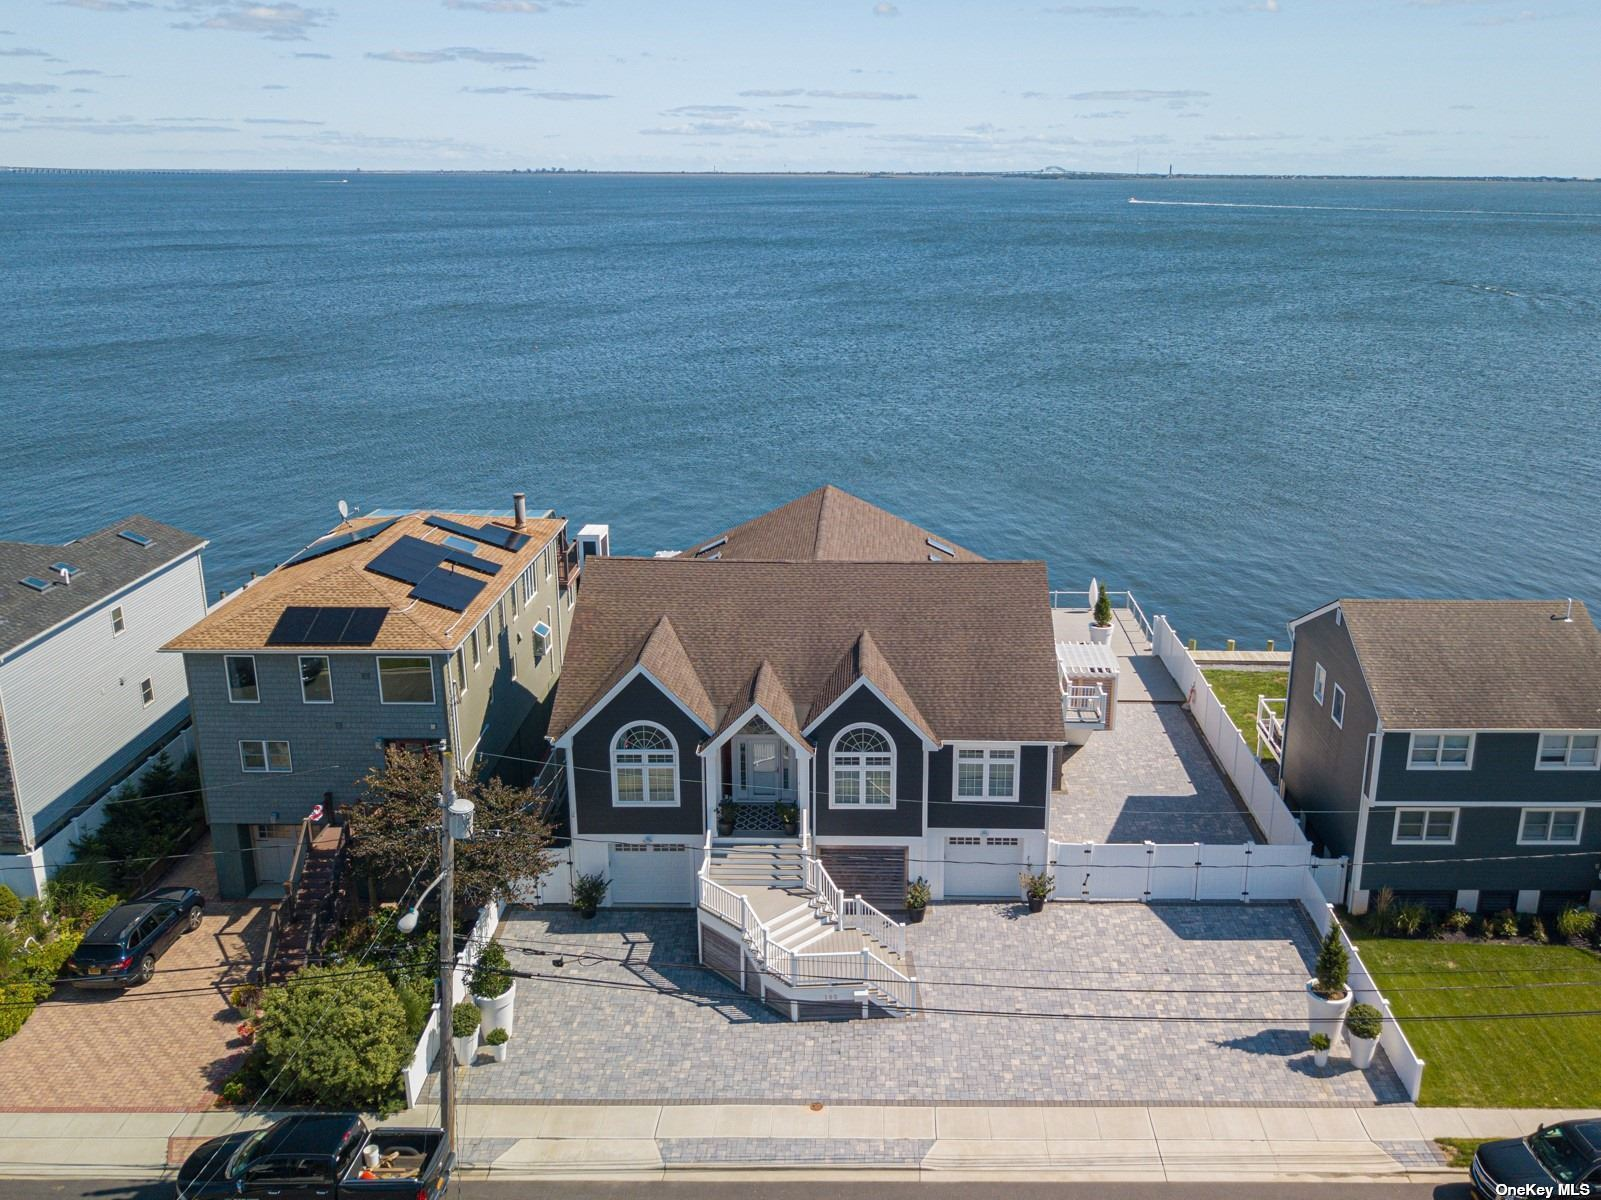 Astonishing Views And Magnificent Details In This Unique Waterfront Estate. Facing The Great South Bay, This Sundrenched Home Offers From The Welcoming Foyer To The Great Living And Dining Room In the Back, The Mesmerizing Views Of The Ocean Through The Amazing Windows And Sliding Doors, Open Design Gourmet White Kitchen, 18 Ft High Cathedral Ceilings With 4 Skylights, 4 Bedrooms, 2.5 Baths, Radiant Tiles, CAC, 200 Amp Elect, 35x16 Sq. Ft. Salted Water Inground Pool Surrounded By 2,080 Sq. Ft. Gorgeous Trex Deck, Hot Tub, Terrace With Pergola And Balconies, 3 Car Garage With An Electrical Charger, 5-Car Stone Pavers Driveway, Enormous Walk Out Attic, Huge Basement,  All Fenced. Close To Train (5 Min Drive), Shop  & Restaurants. Community Private Beaches And Parks.